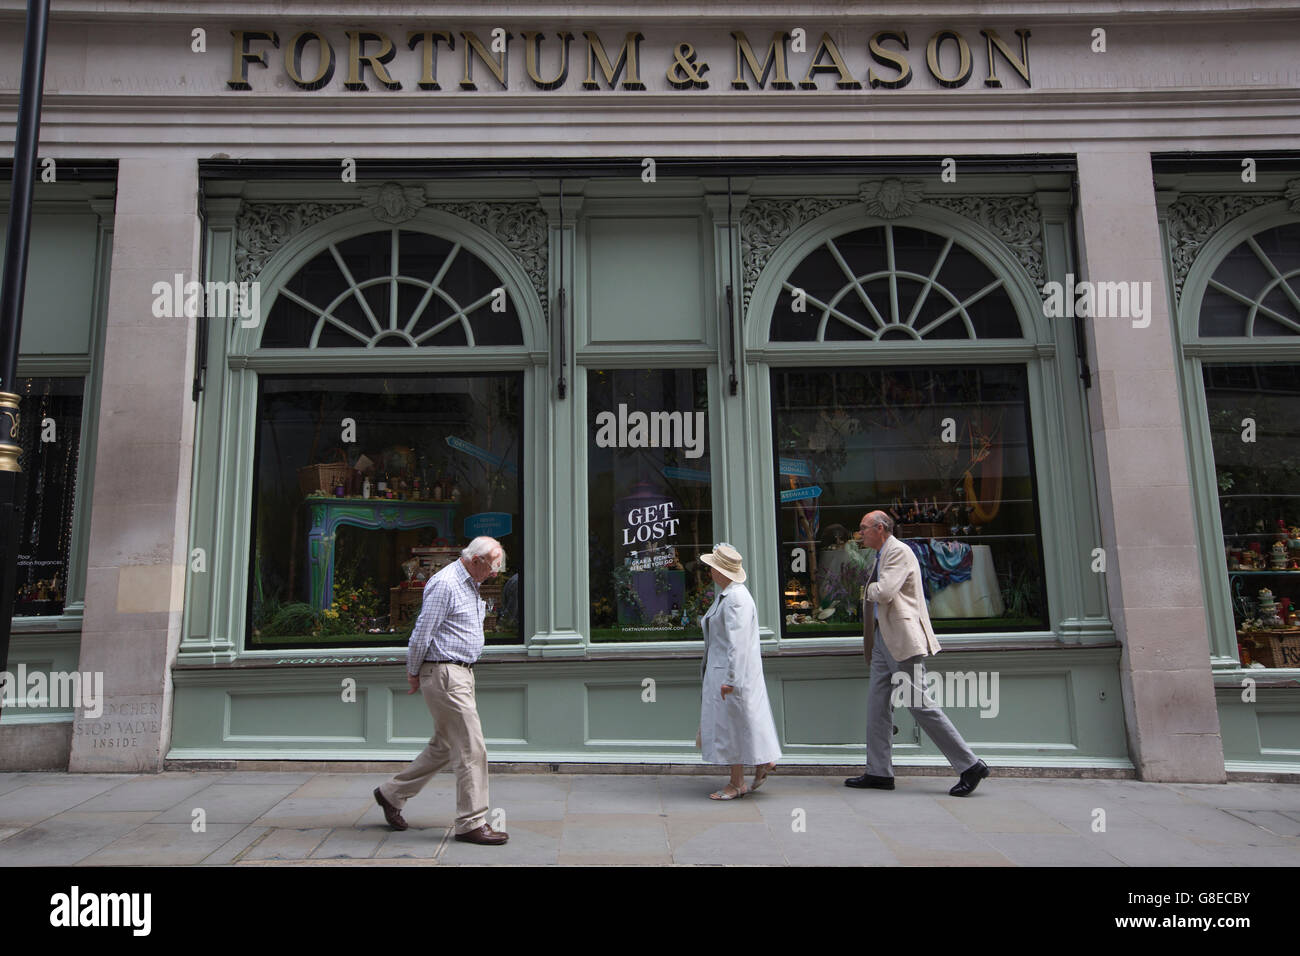 Fortnum & Mason, upmarket department store situated on Piccadilly, Central London, England, UK - Stock Image